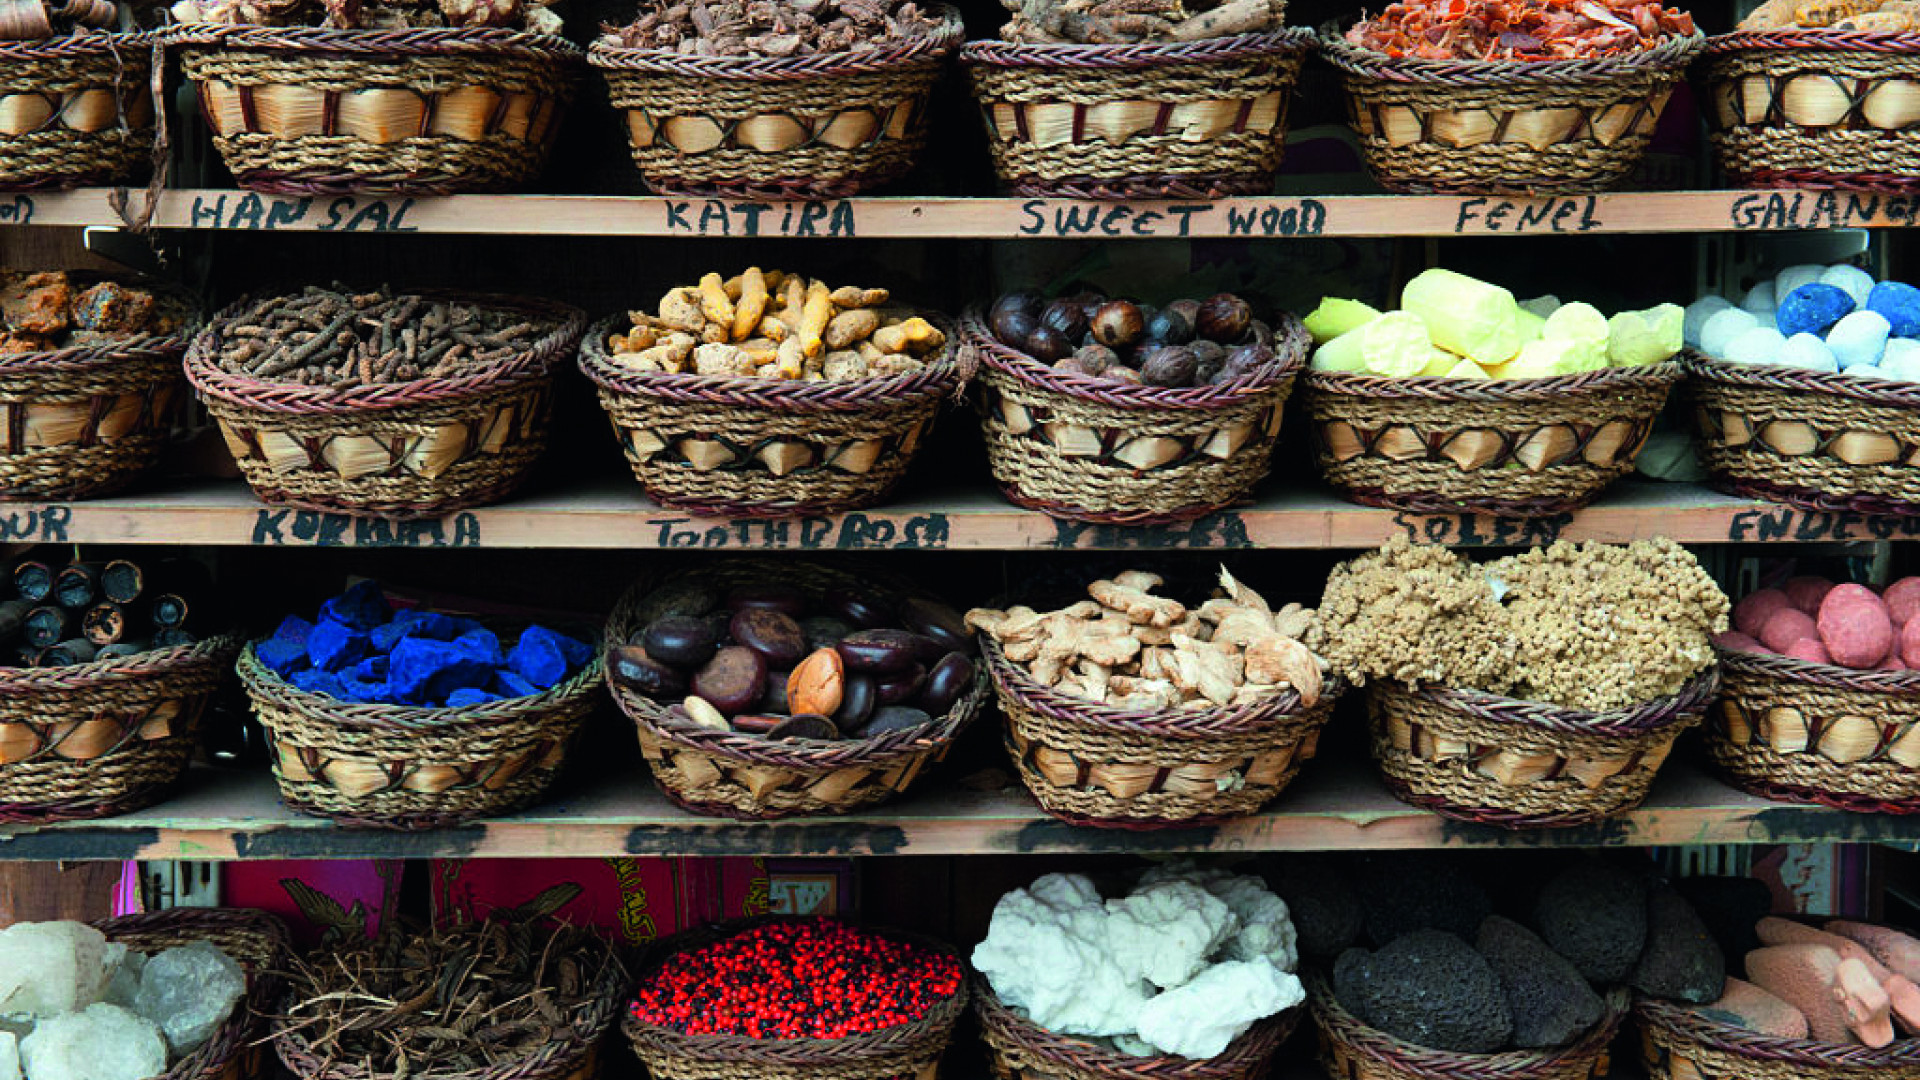 Spices for sale at Dubai old market